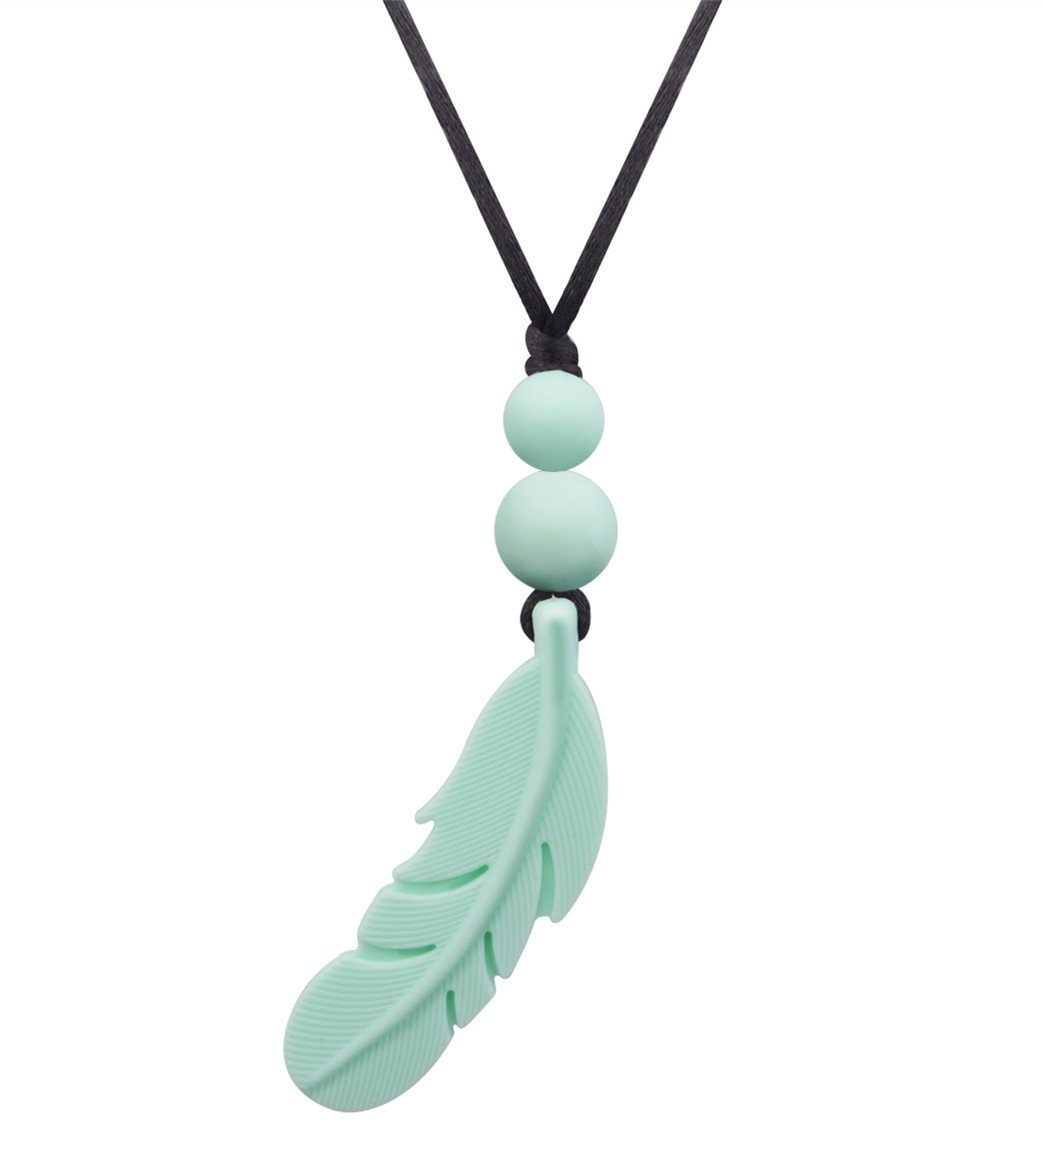 Designer Silicone Beads Feather Pendant Necklace for Female,Baby Teething Pain Relief Teether Toys,100% BPA Free,15 Inches,Mint (Green)